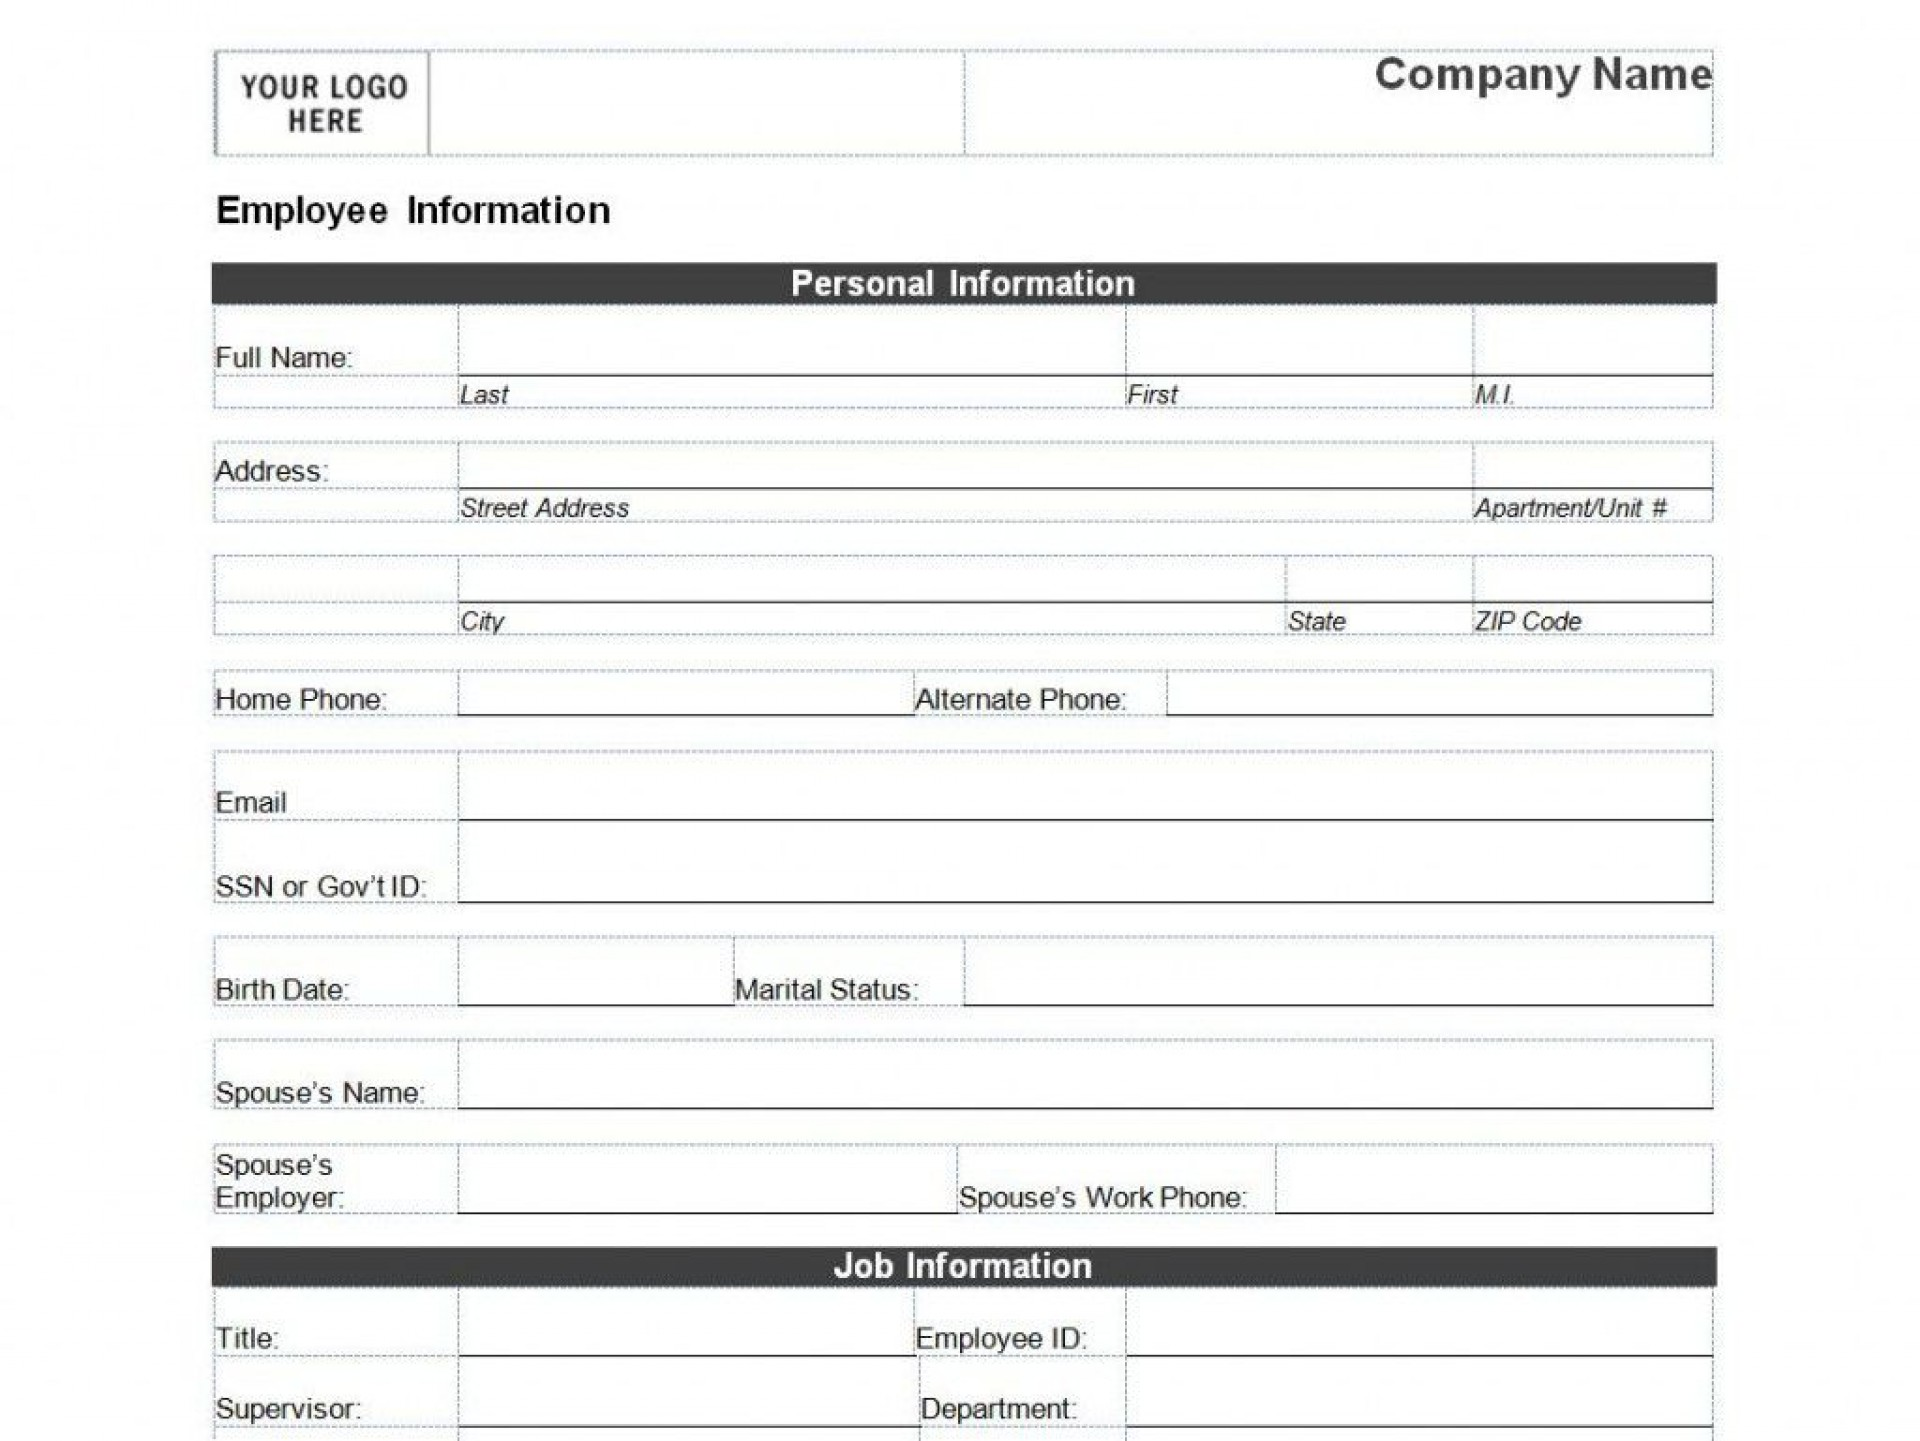 008 Remarkable Client Information Form Template Excel Design 1920